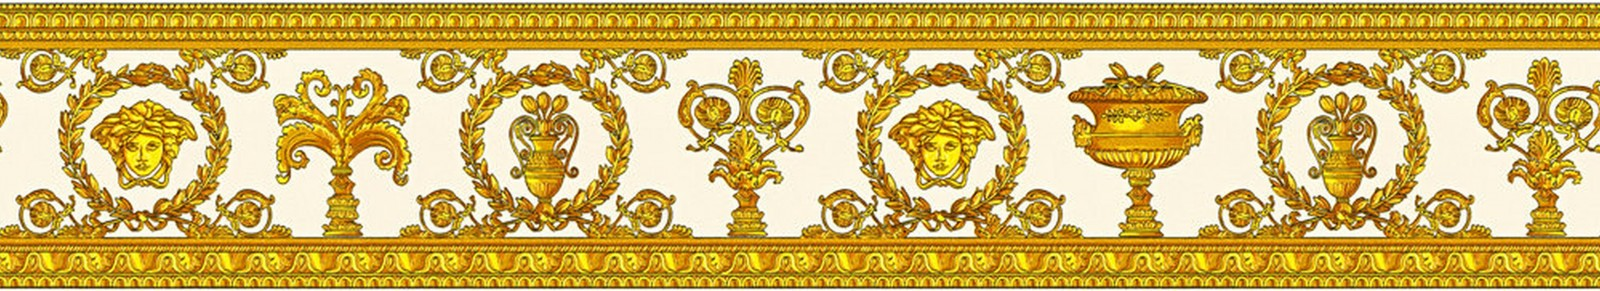 Versace 3 greek wall borders jellyfish griffe luxury home collection in embossed vinyl 34305-2..